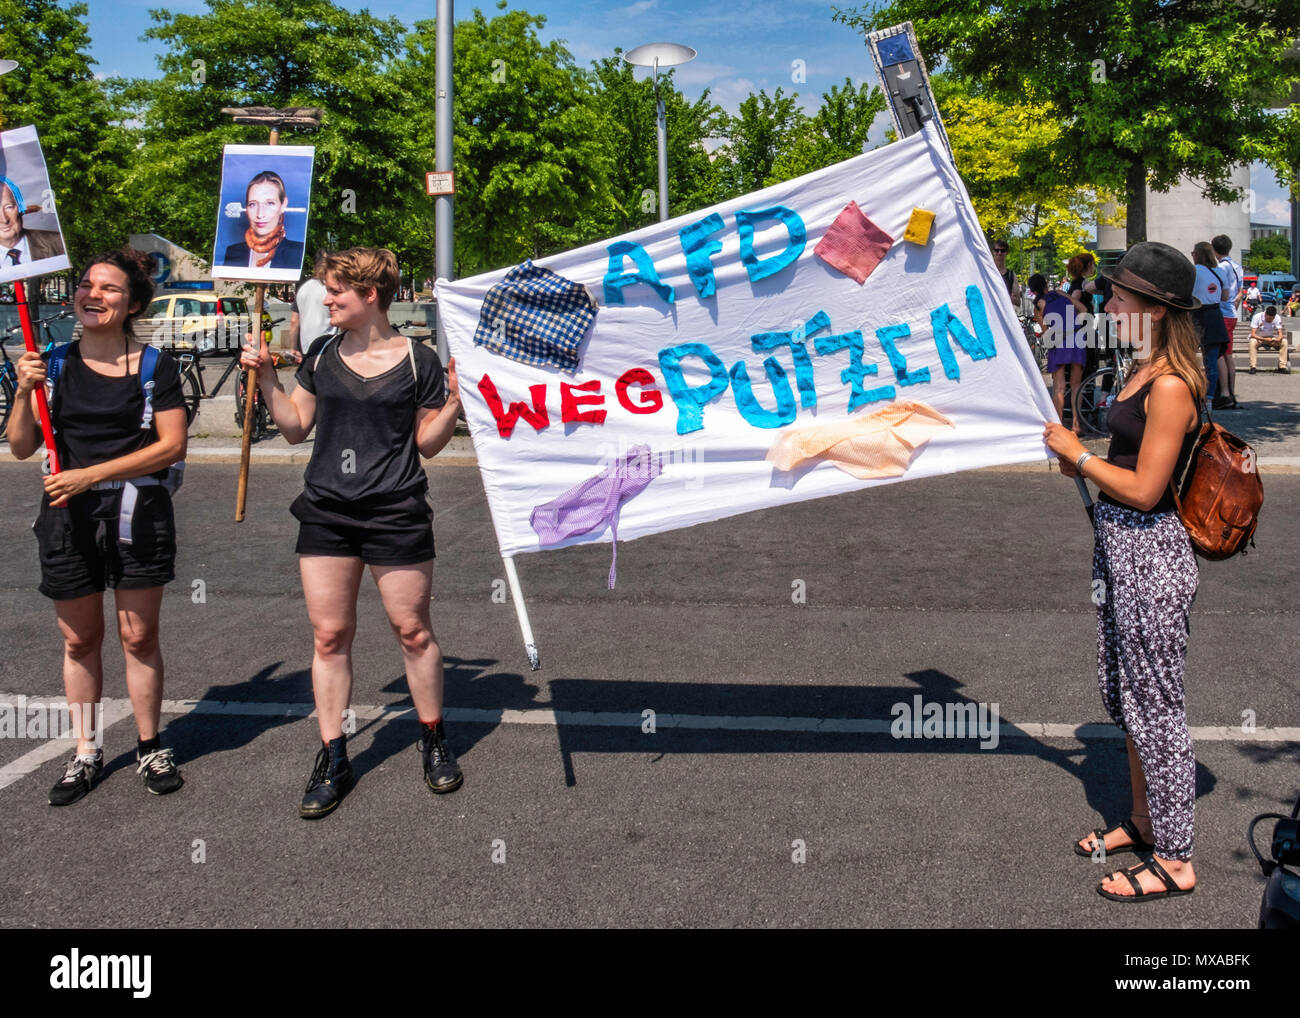 Berlin Mitte Anti AfD protesters. Young women with Banners challenge the anti-immigration right wingers - Stock Image